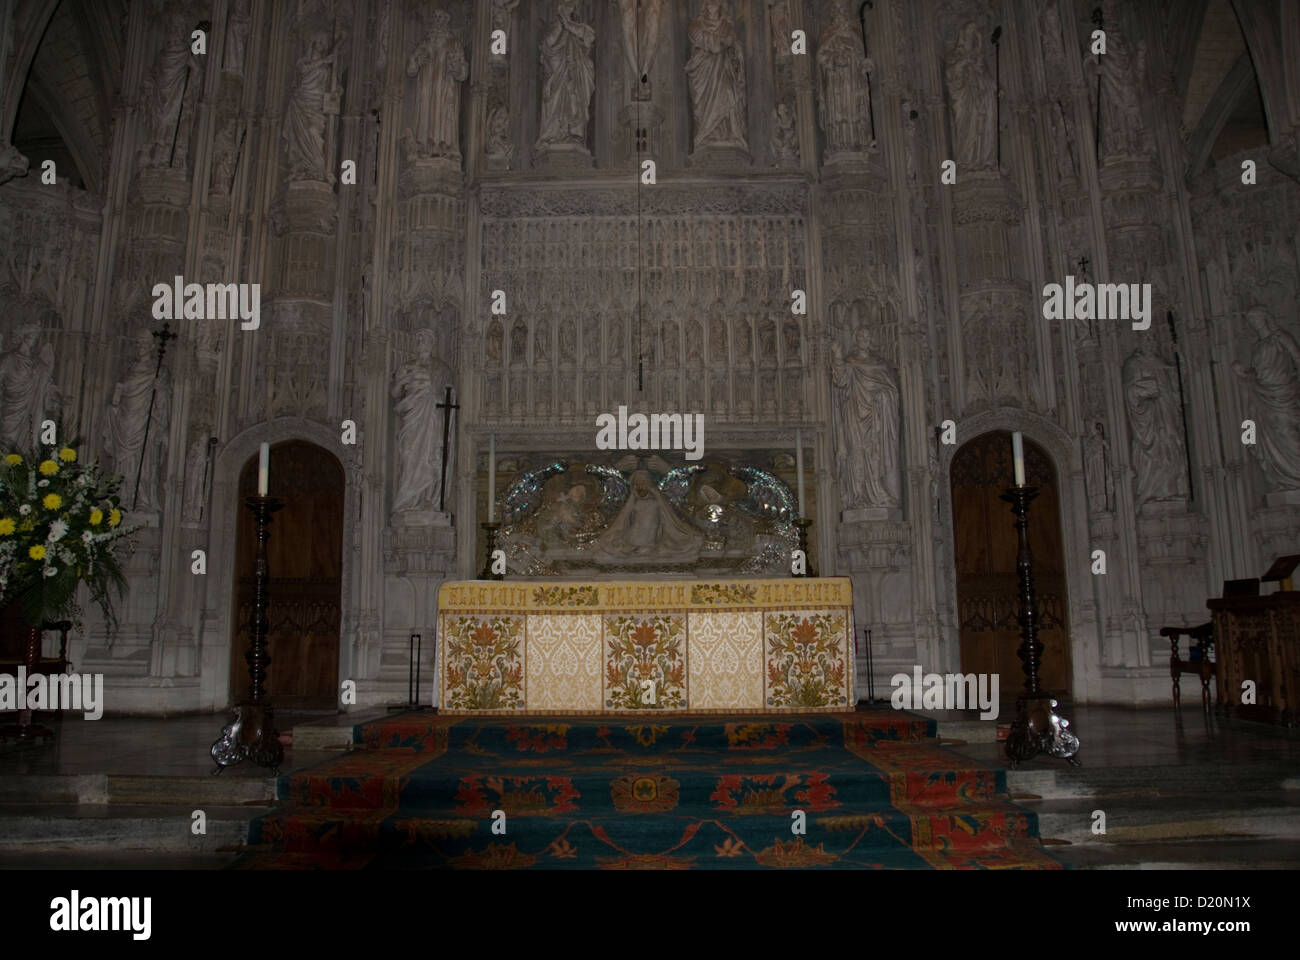 HERTS; ST.ALBANS ABBEY; THE ALTAR; THE RESURRECTION; SHRINE STS.ALBAN & AMPHIBALUS; (DESIGNED BY ALFRED GILBERT) - Stock Image